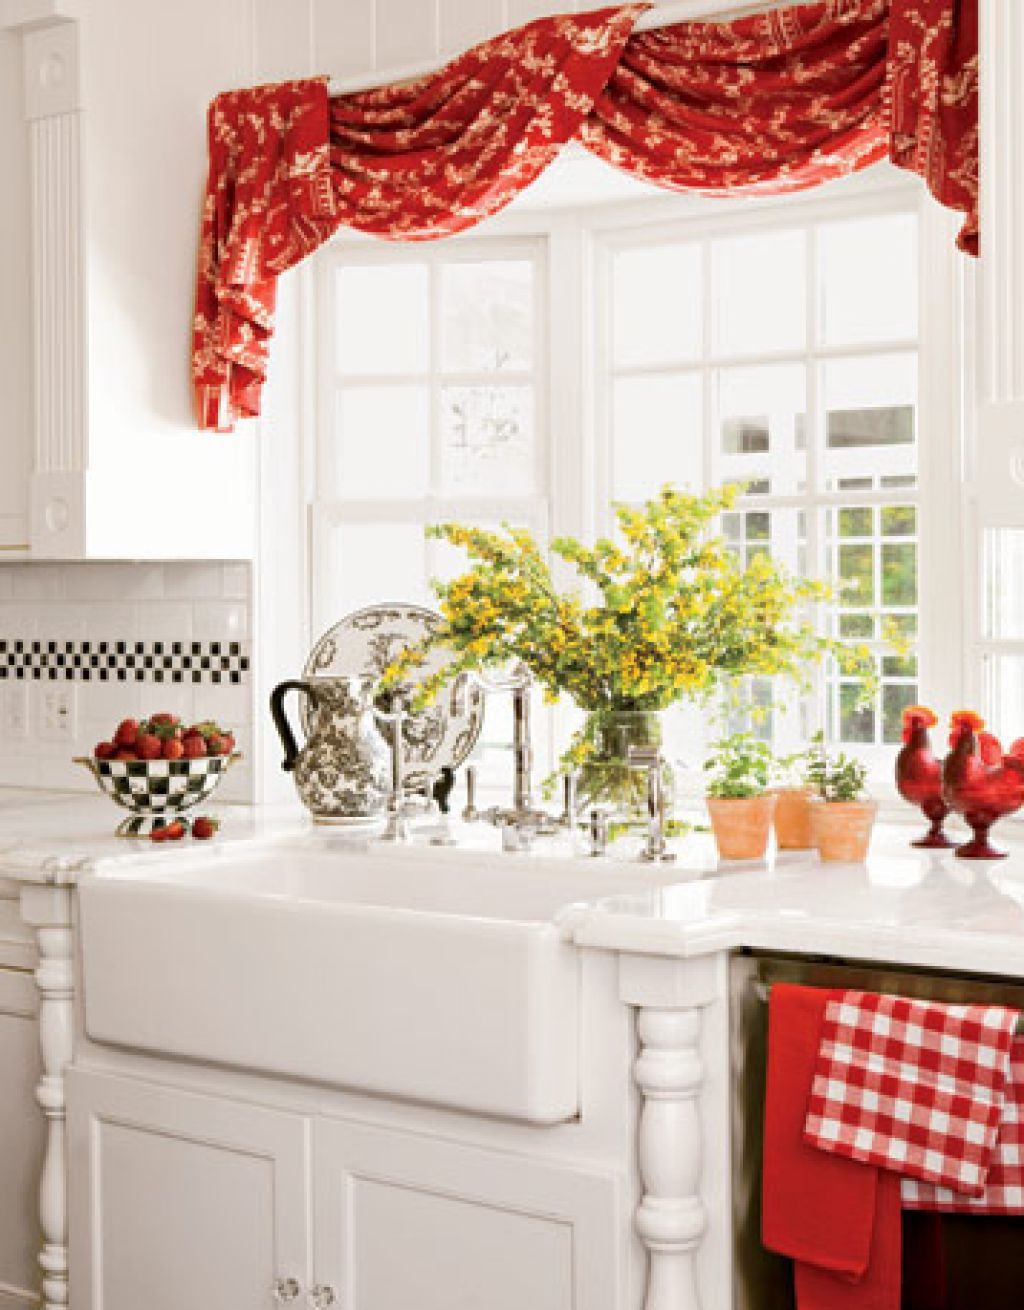 good-beautiful-kitchen-curtains-hd9h19